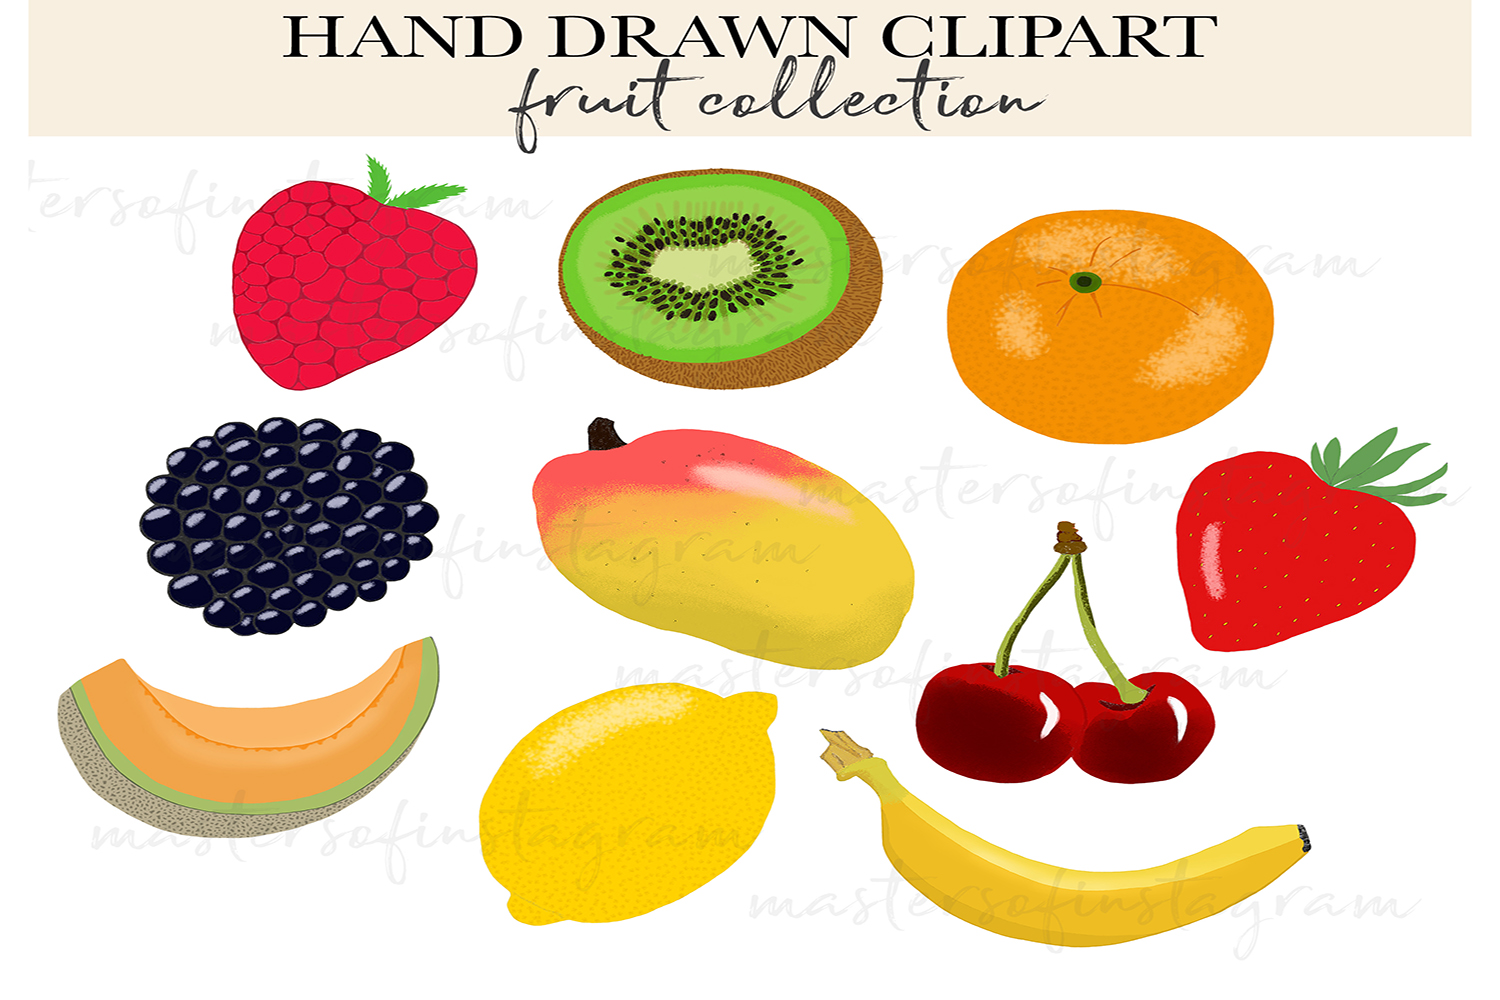 Hand drawn fruit clipart icons illustrations example image 1